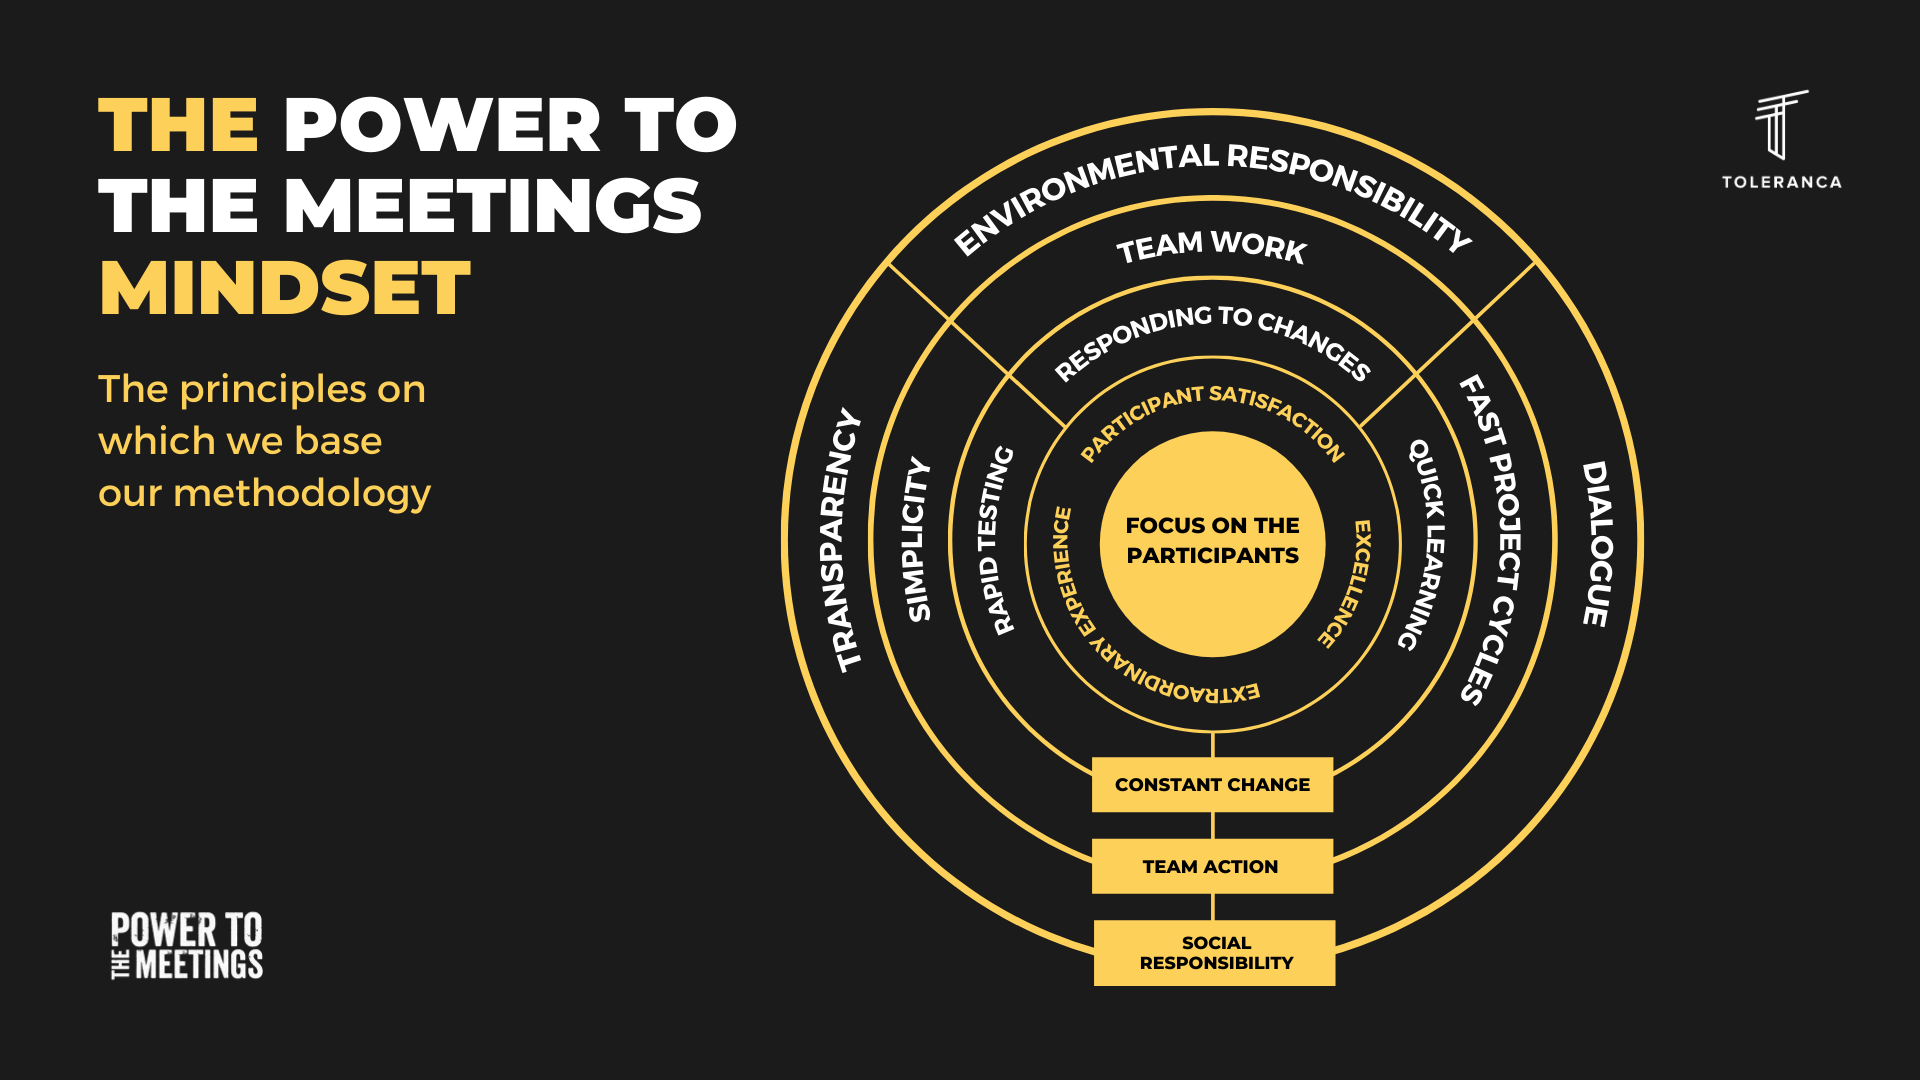 Power-to-the-Meetings-MINDSET-circles